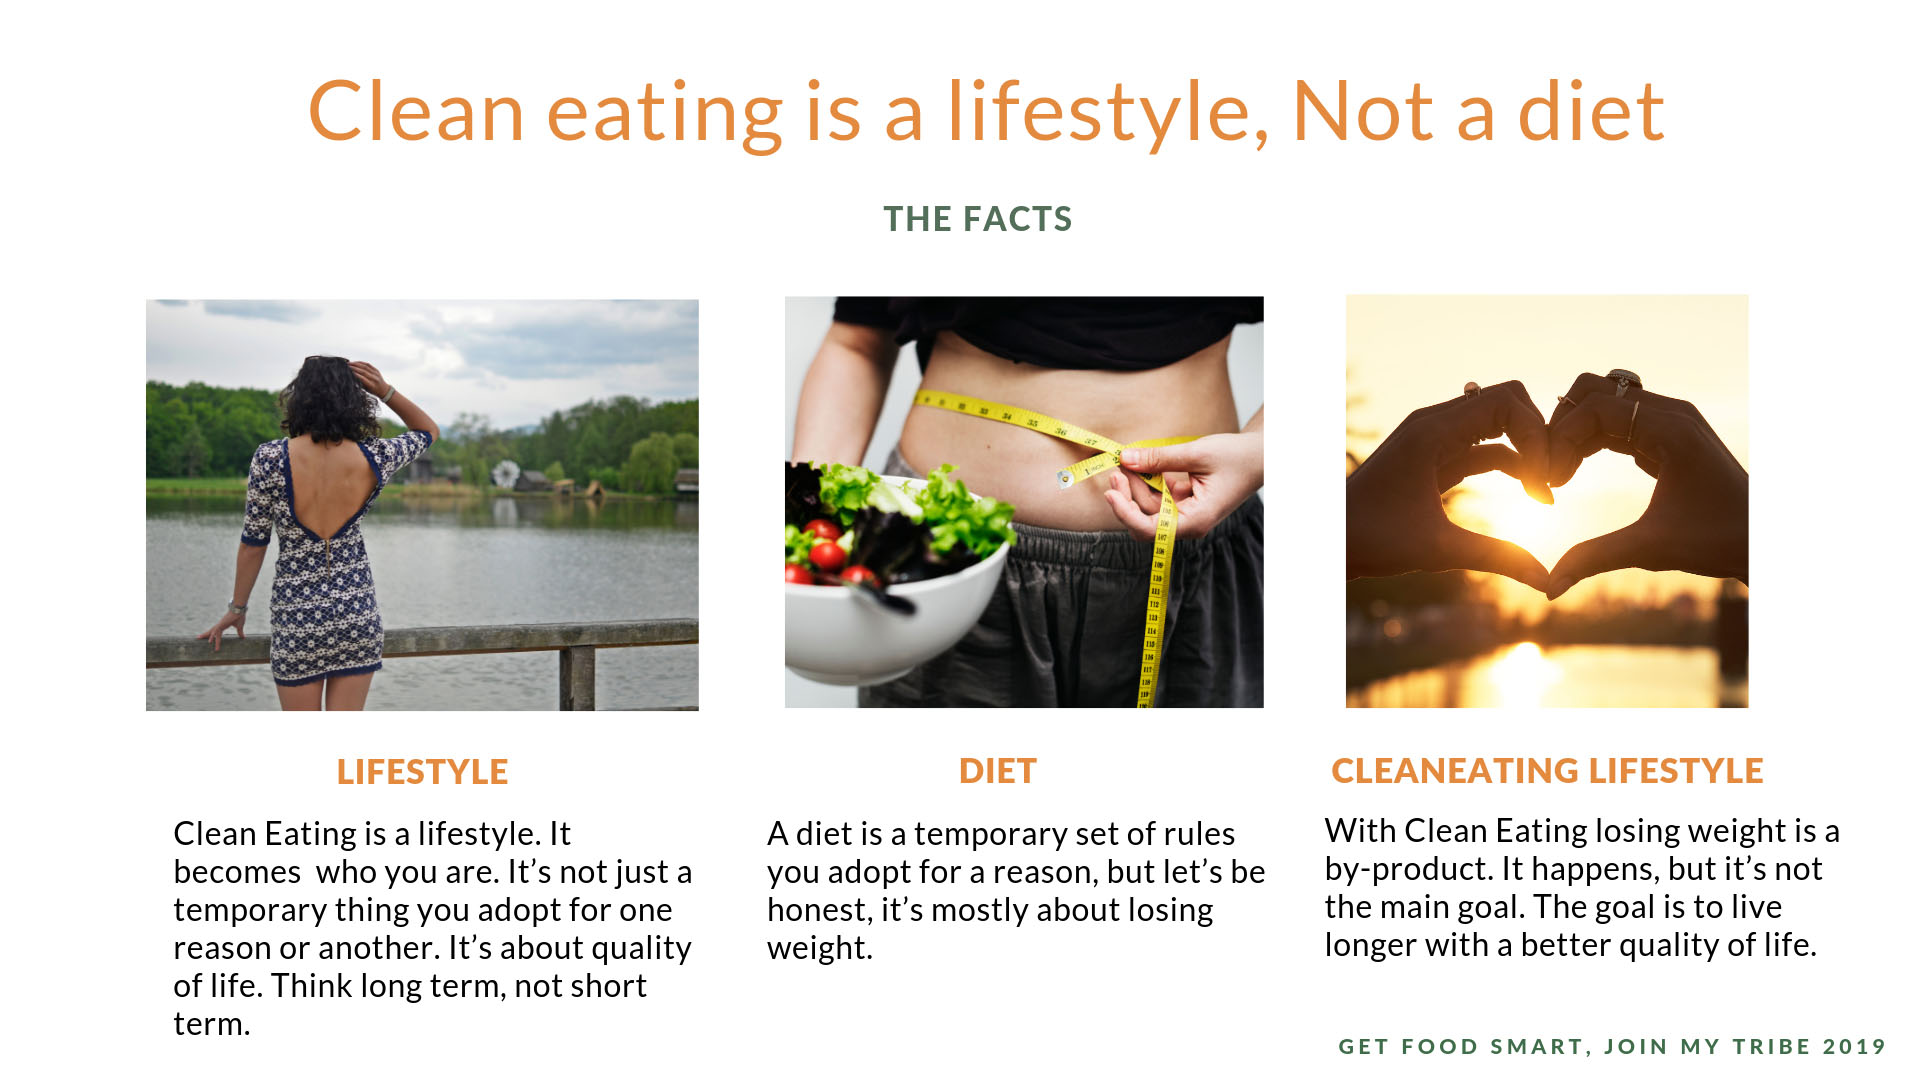 Eating is a lifestyle, not a diet